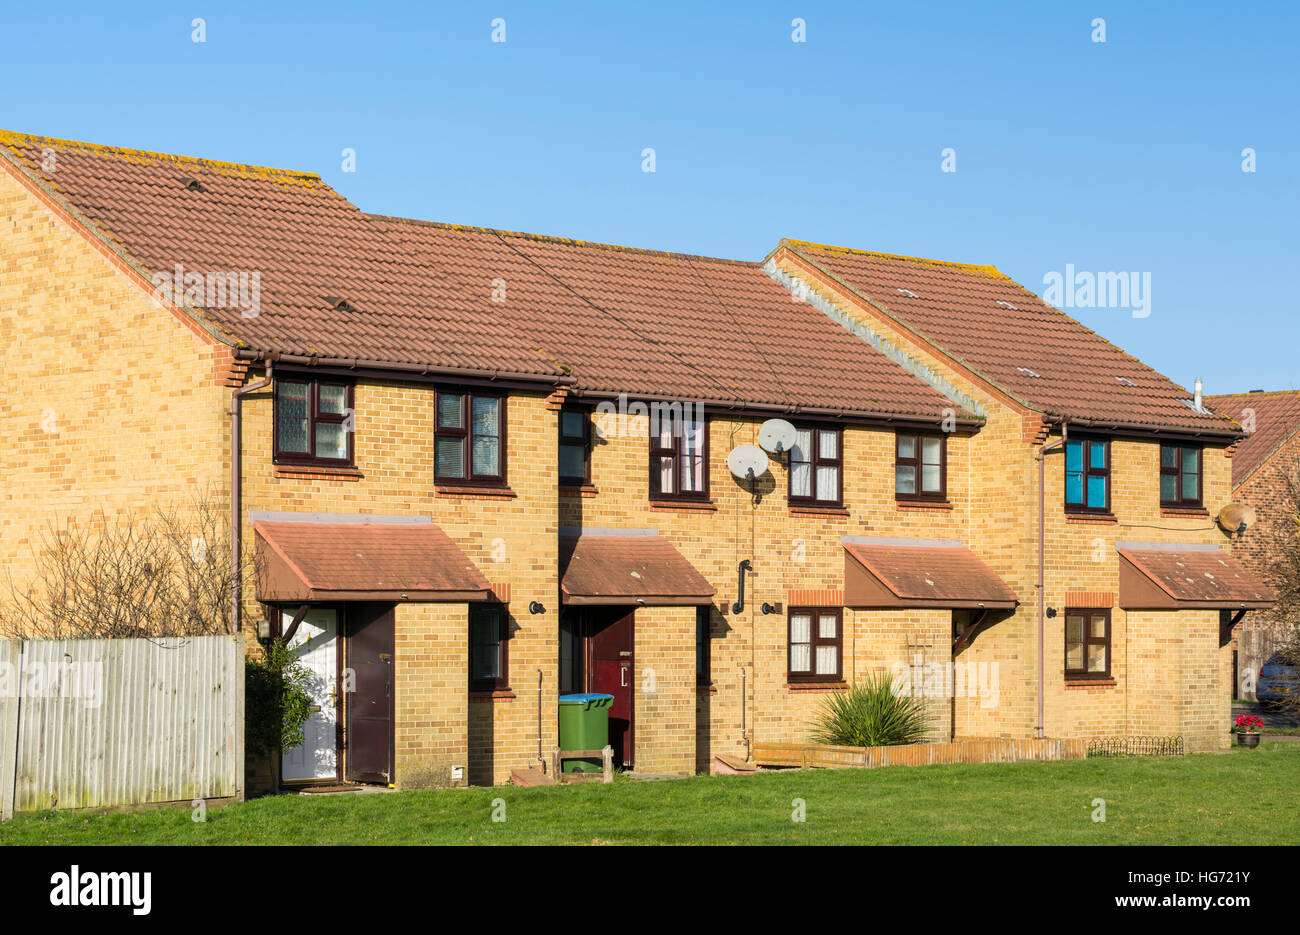 Modern Red Brick Terraced Houses In The South Of England